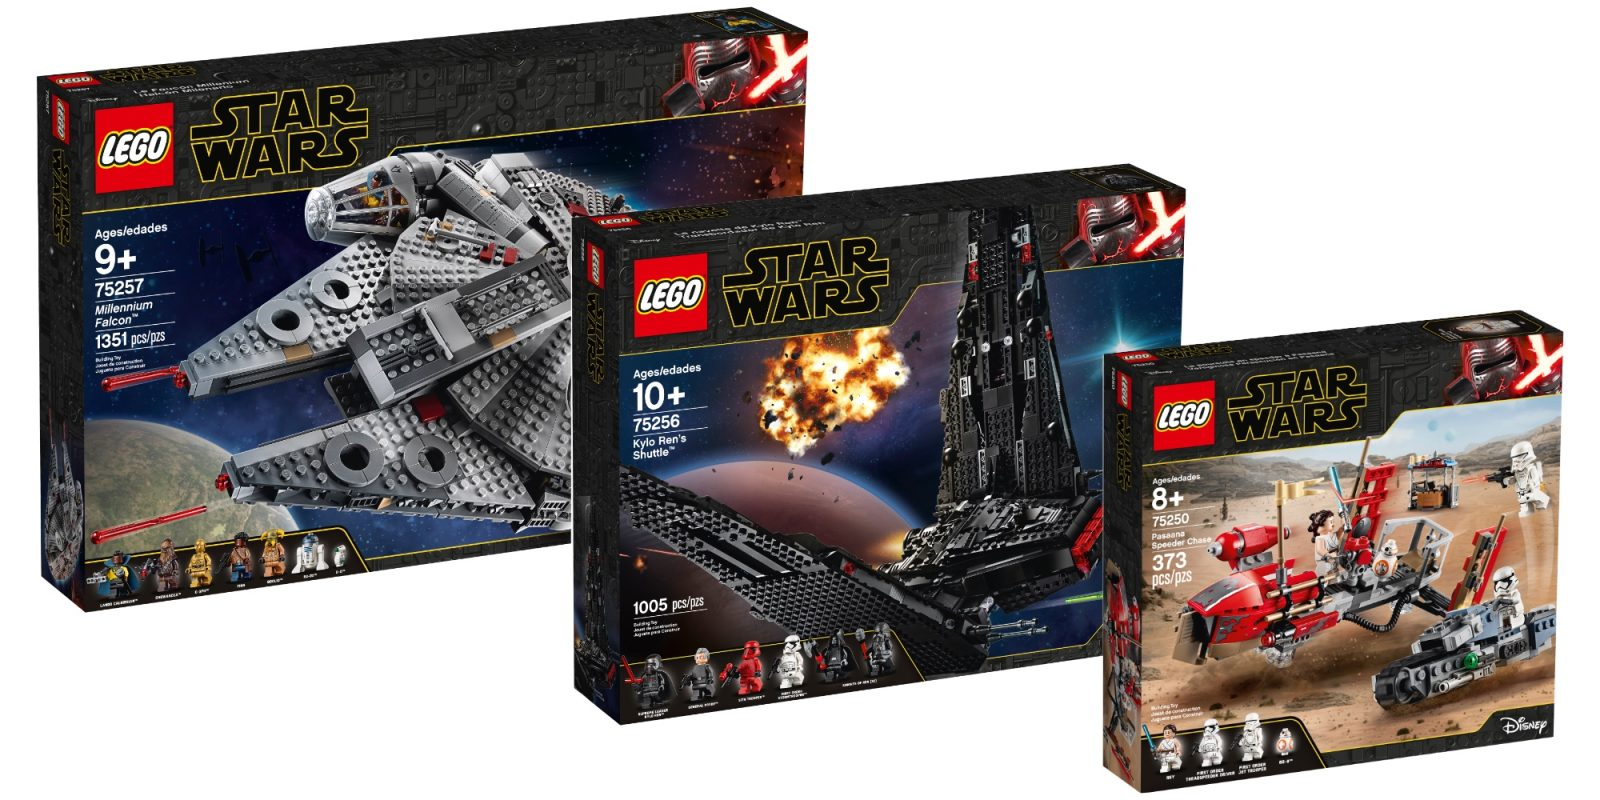 Lego Rise Of Skywalker Kits Bring Eight New Star Wars Builds 9to5toys